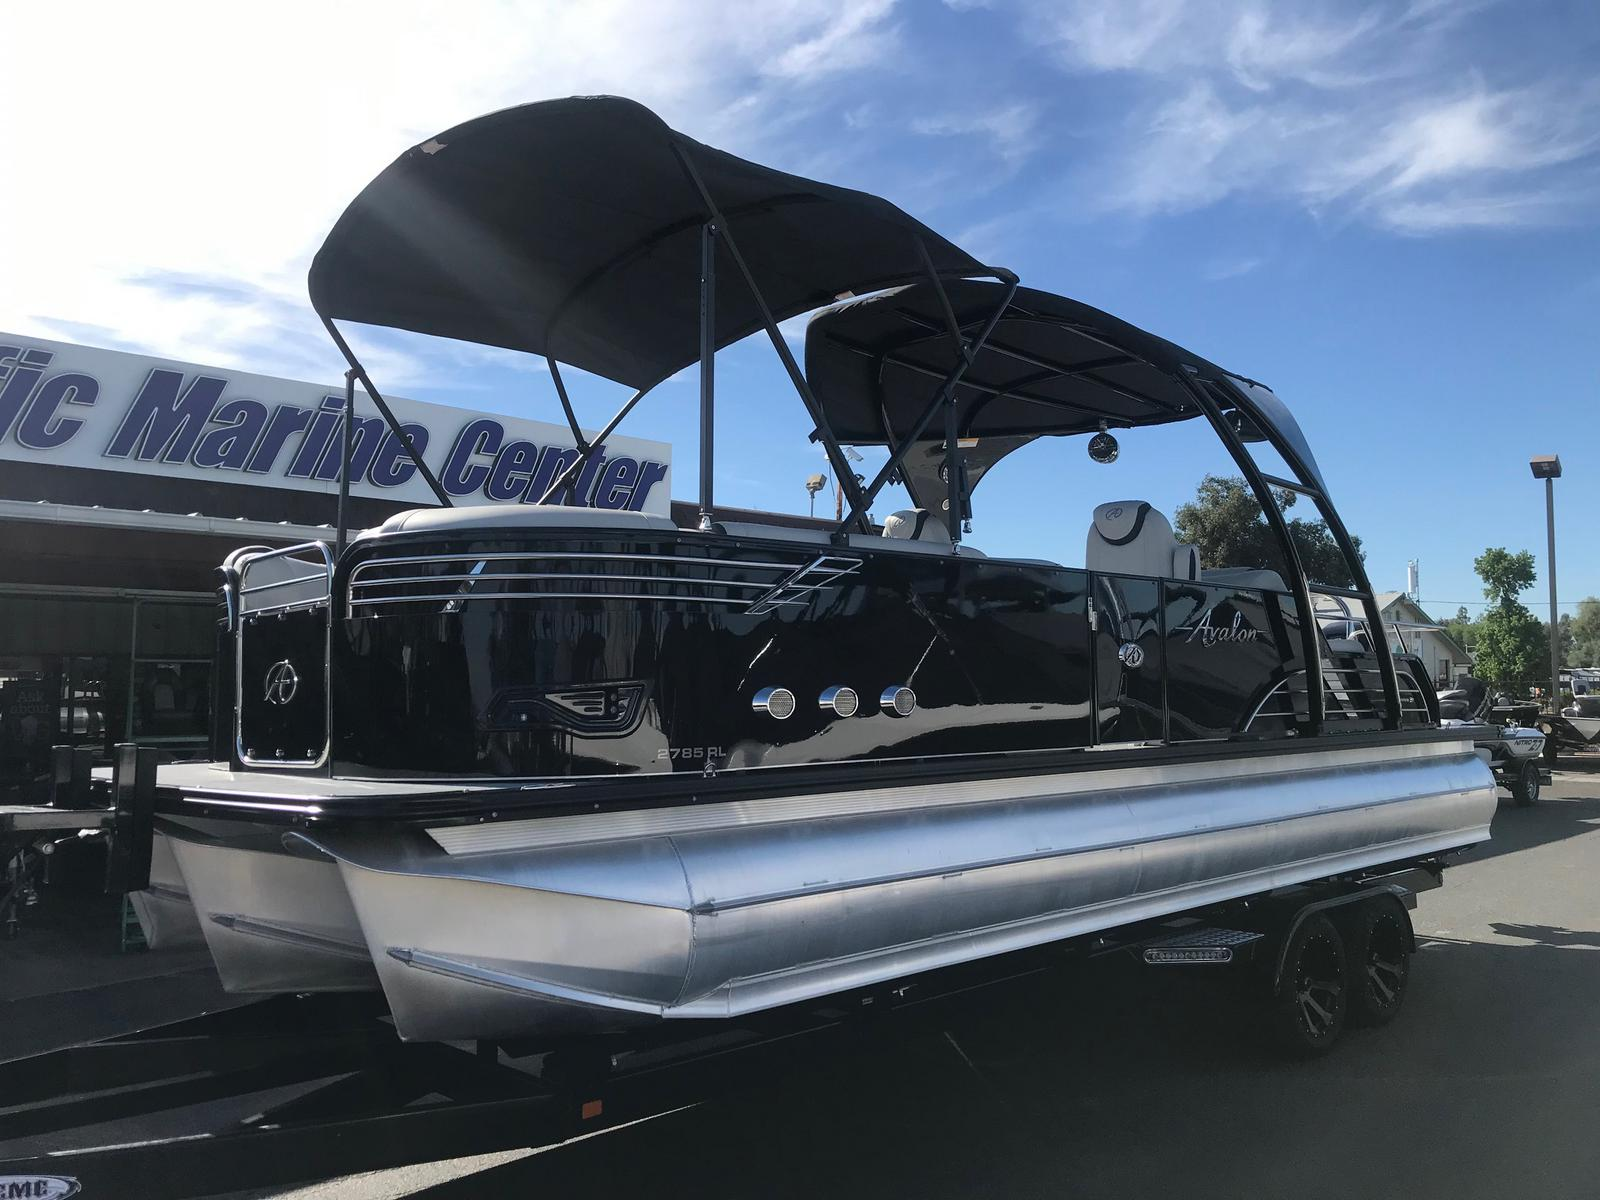 Avalon Ambassador Rear Lounge 27' w/ 400HP Mercury Racing! Has engine warranty Til June 2021